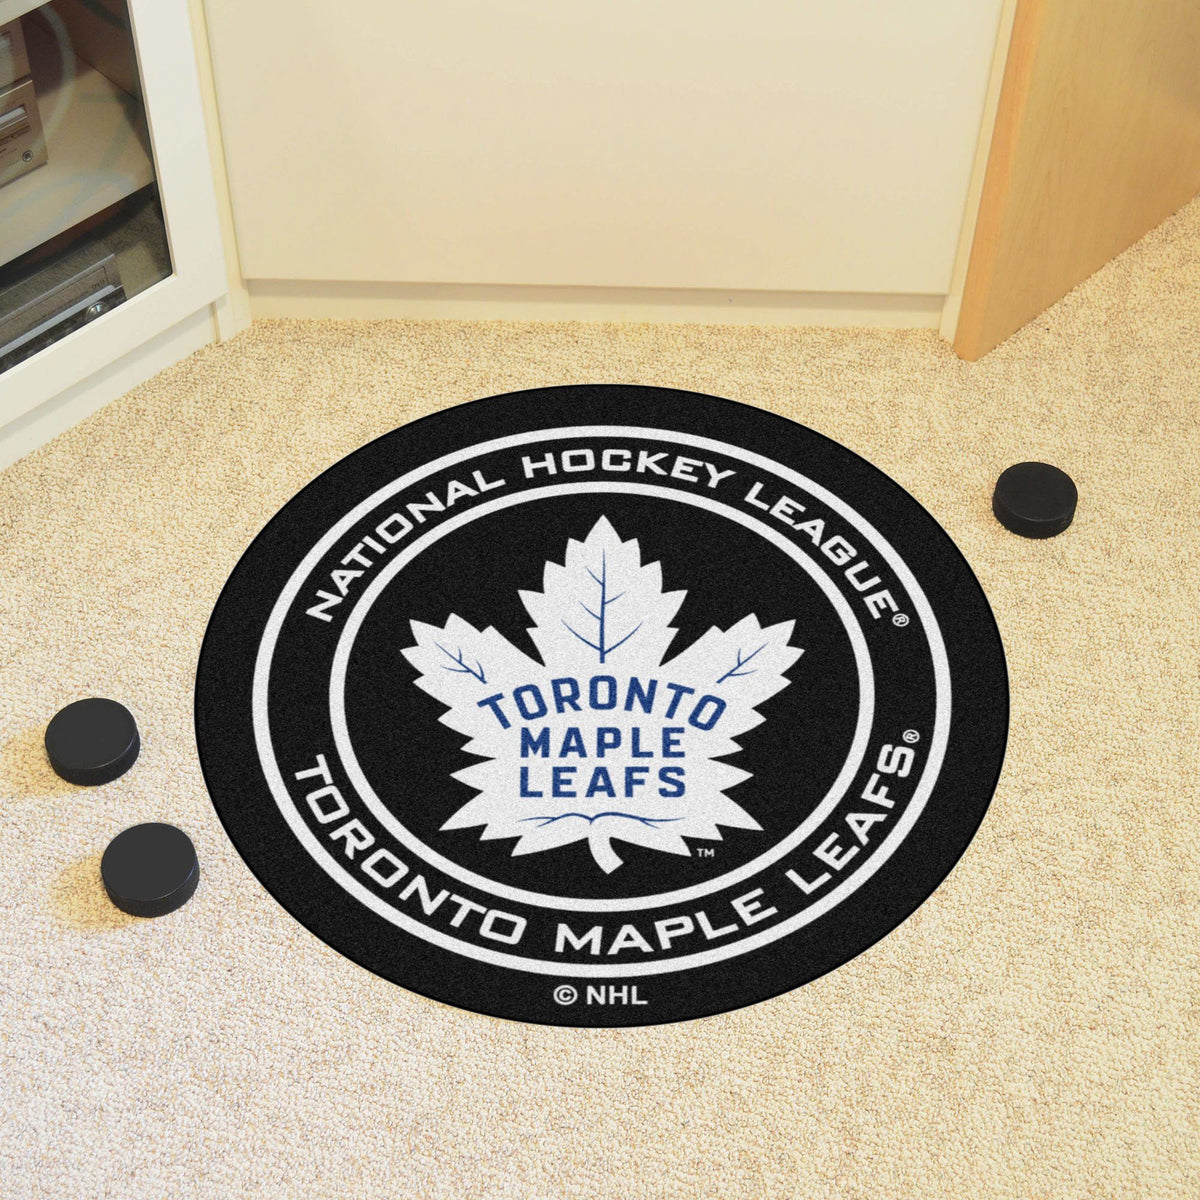 NHL Hockey Puck Mat NHL Hockey Puck Mat Fan Mats Toronto Maple Leafs